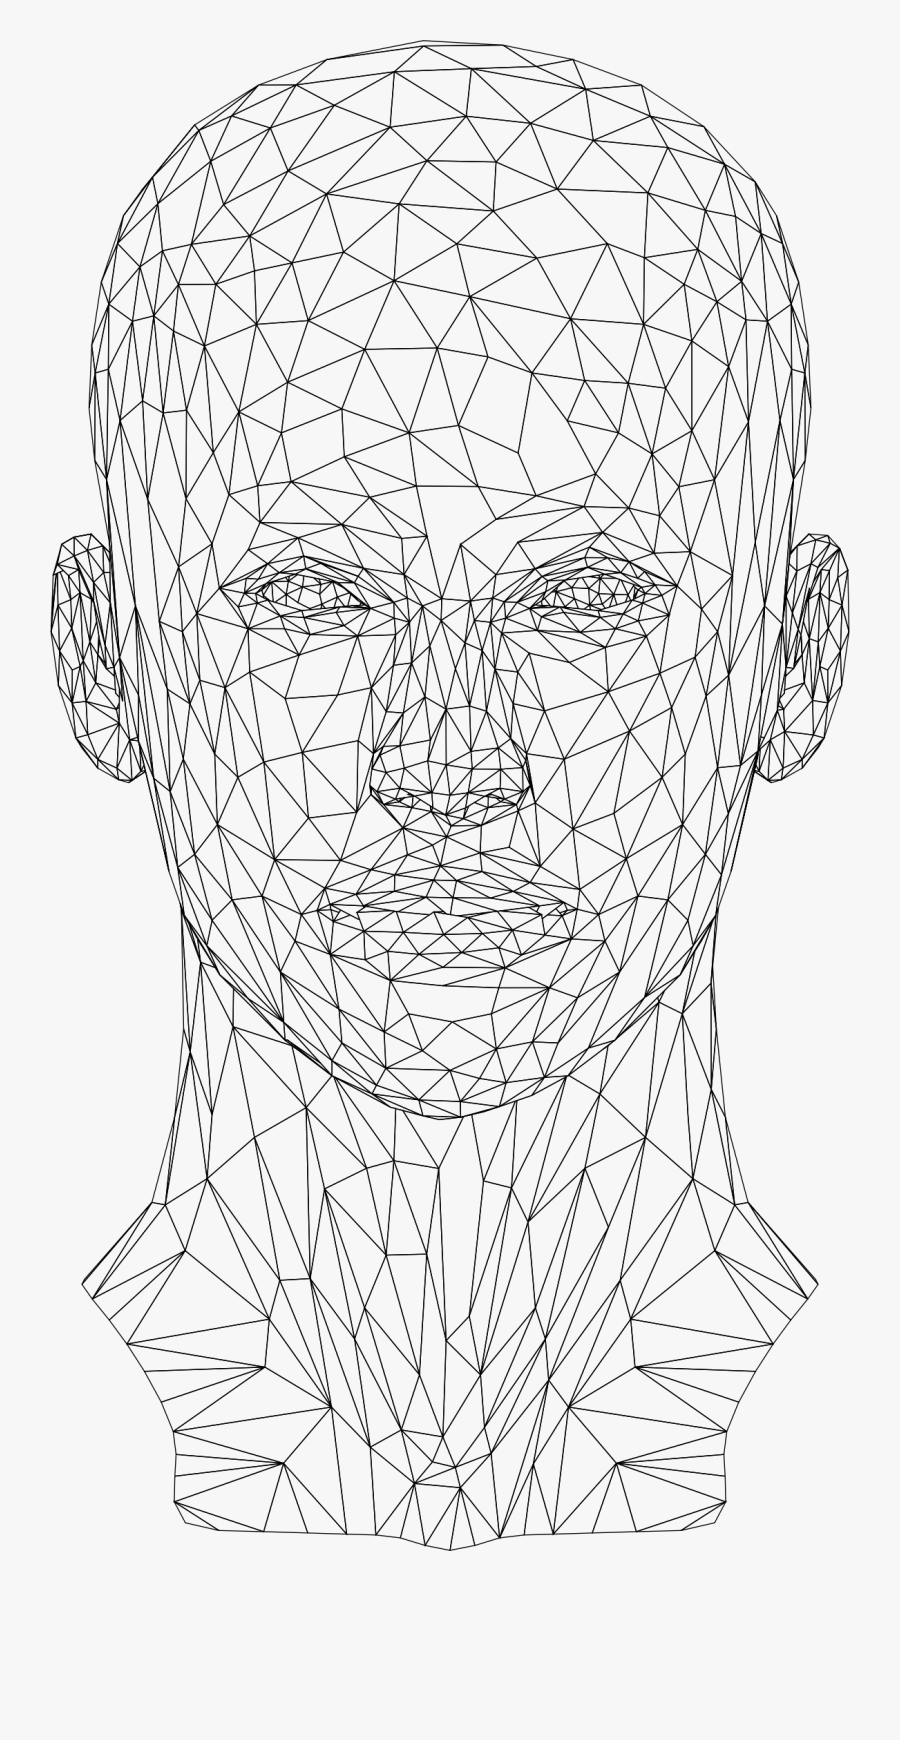 Low Poly Female Head - Wireframe Human Head Png, Transparent Clipart